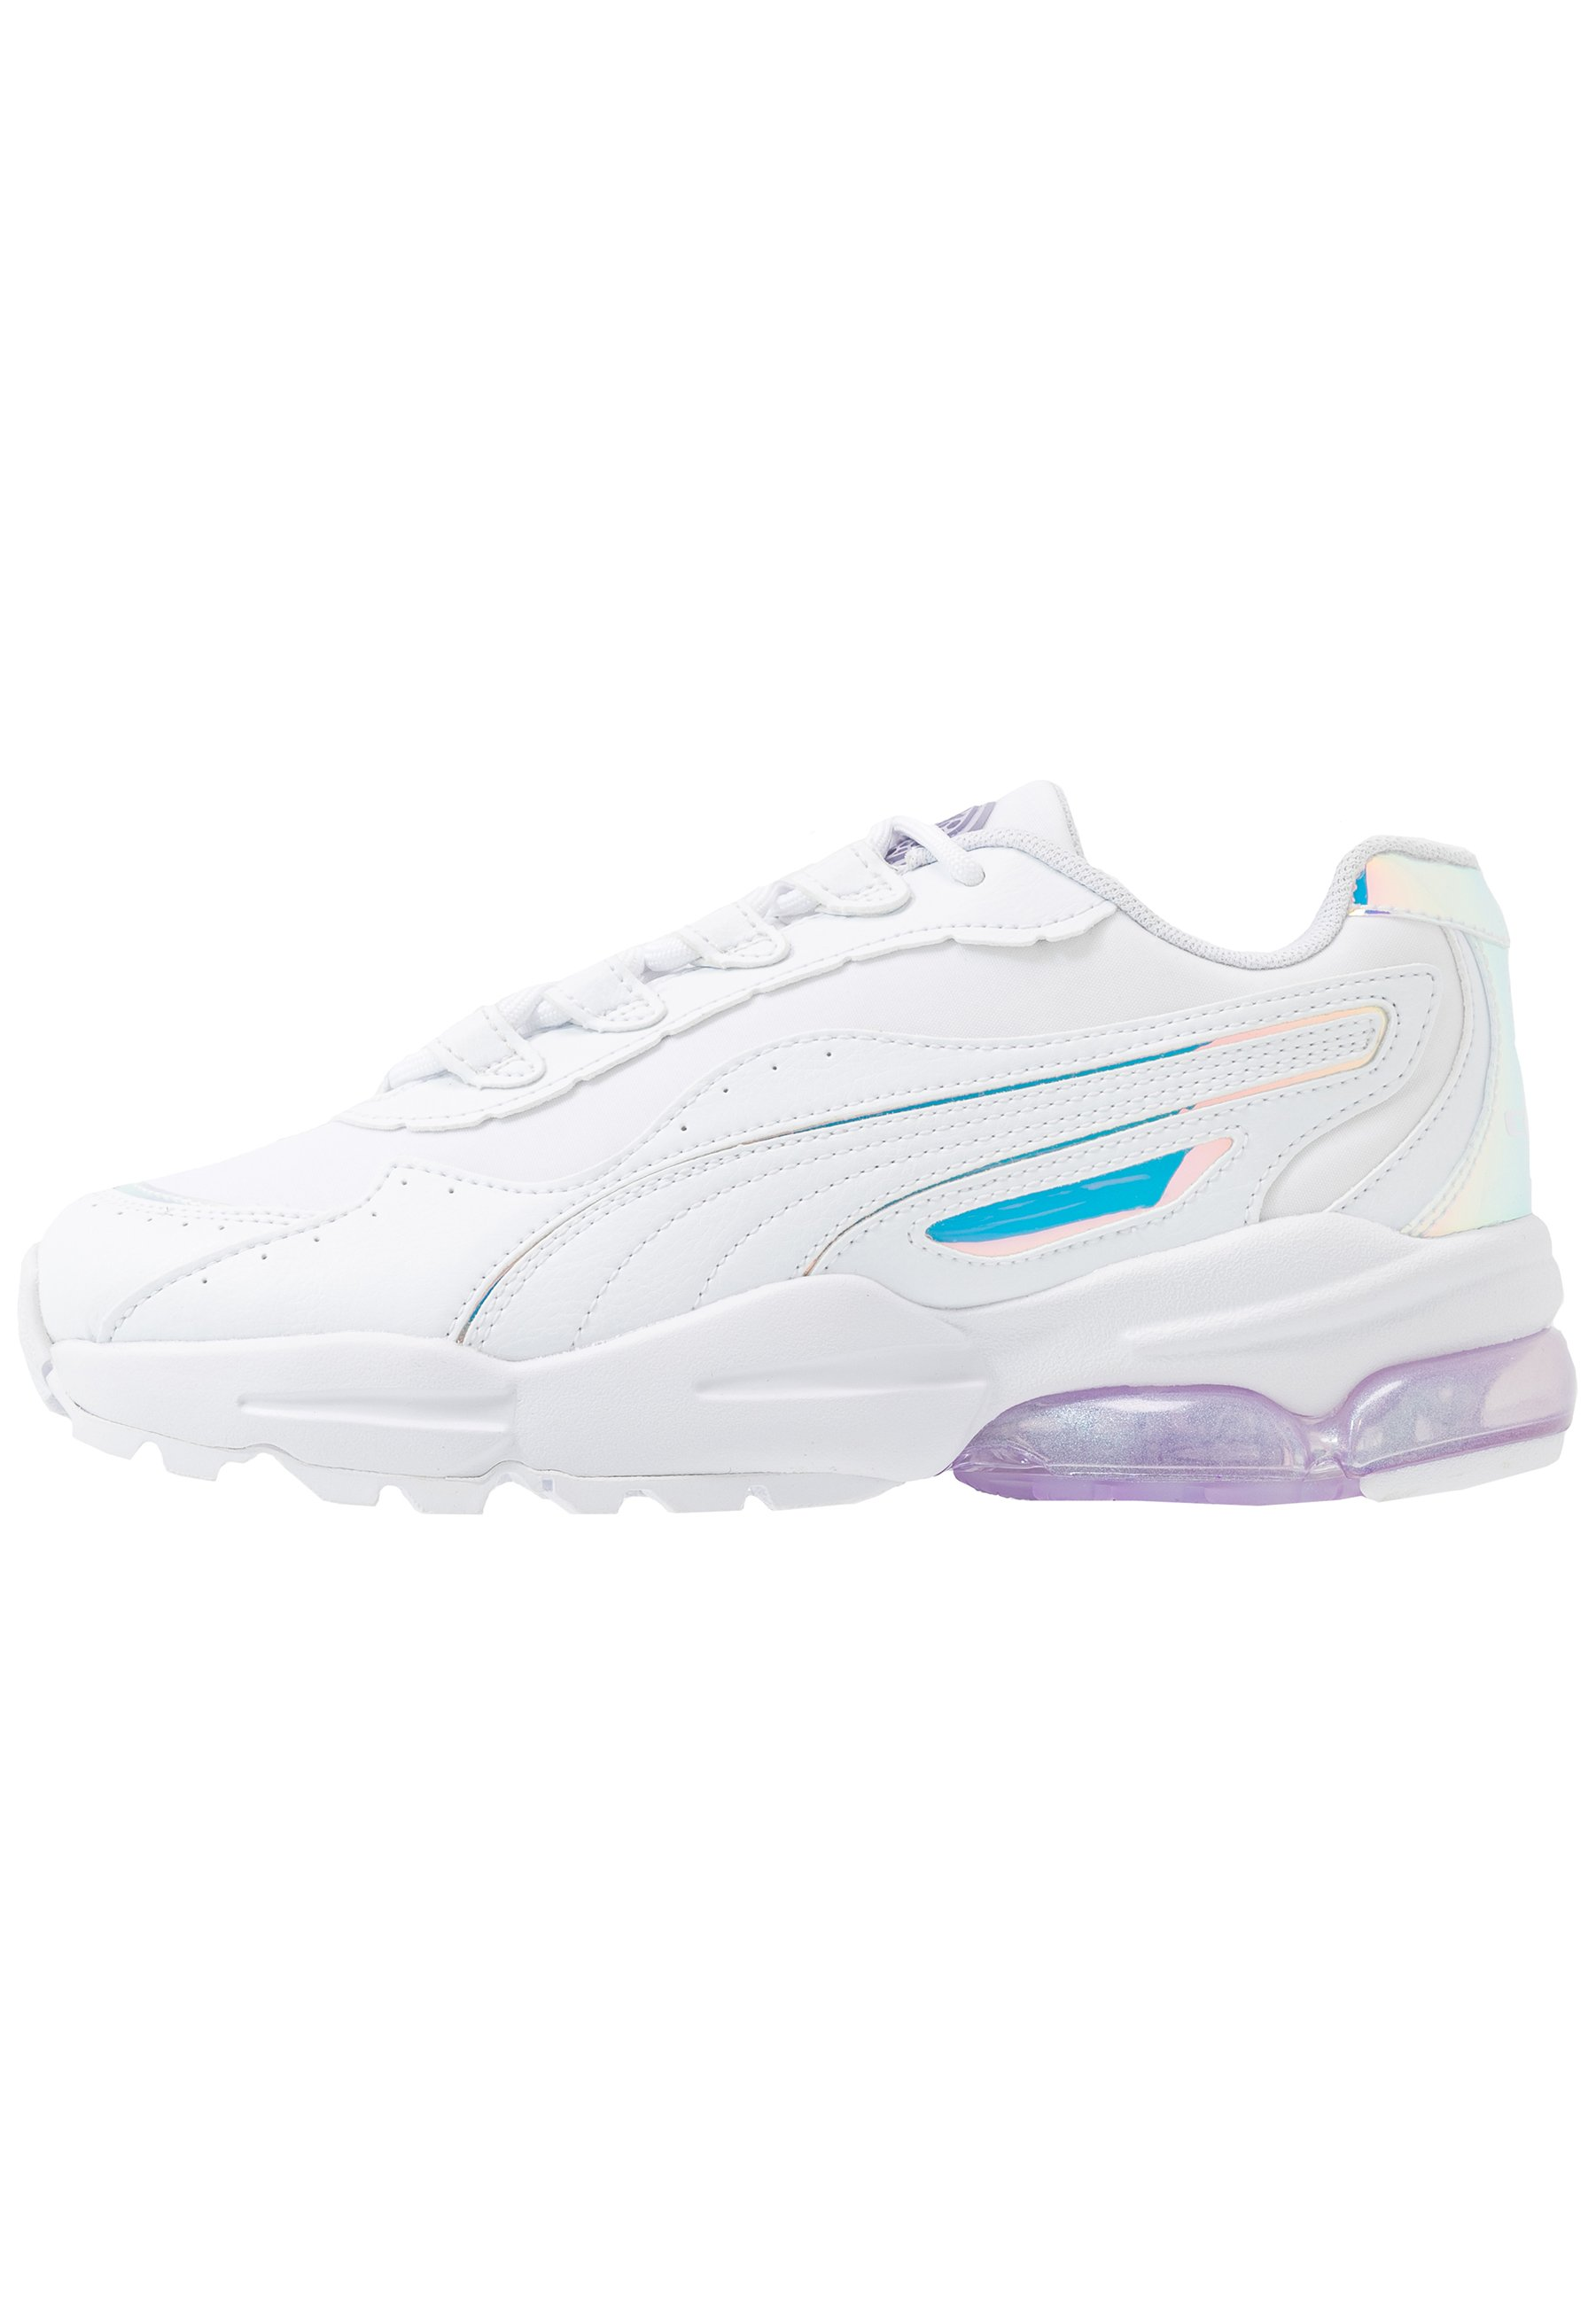 Puma Cell Stellar Glow - Sneakers Black/purple Heather